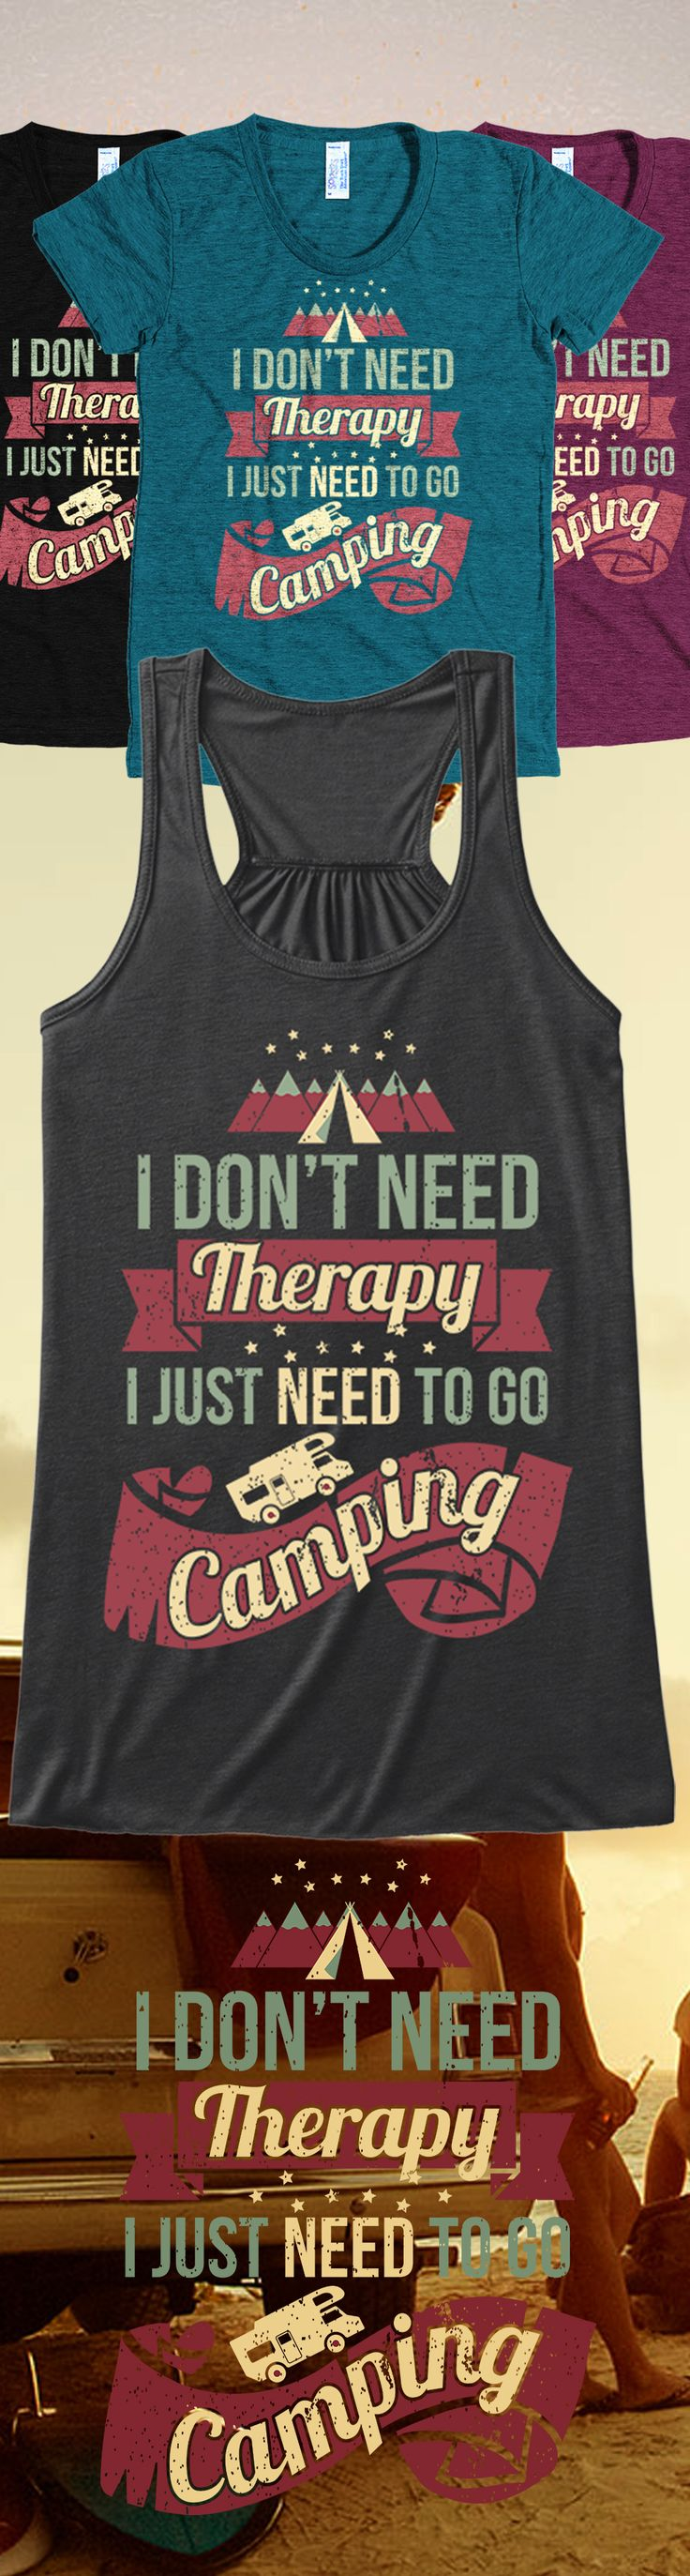 Love camping? Check out these awesome camping shirts and tank tops you will not find anywhere else. Not sold in stores and only 2 days left for free shipping! Grab yours or gift it to a friend, you will both love it 😘